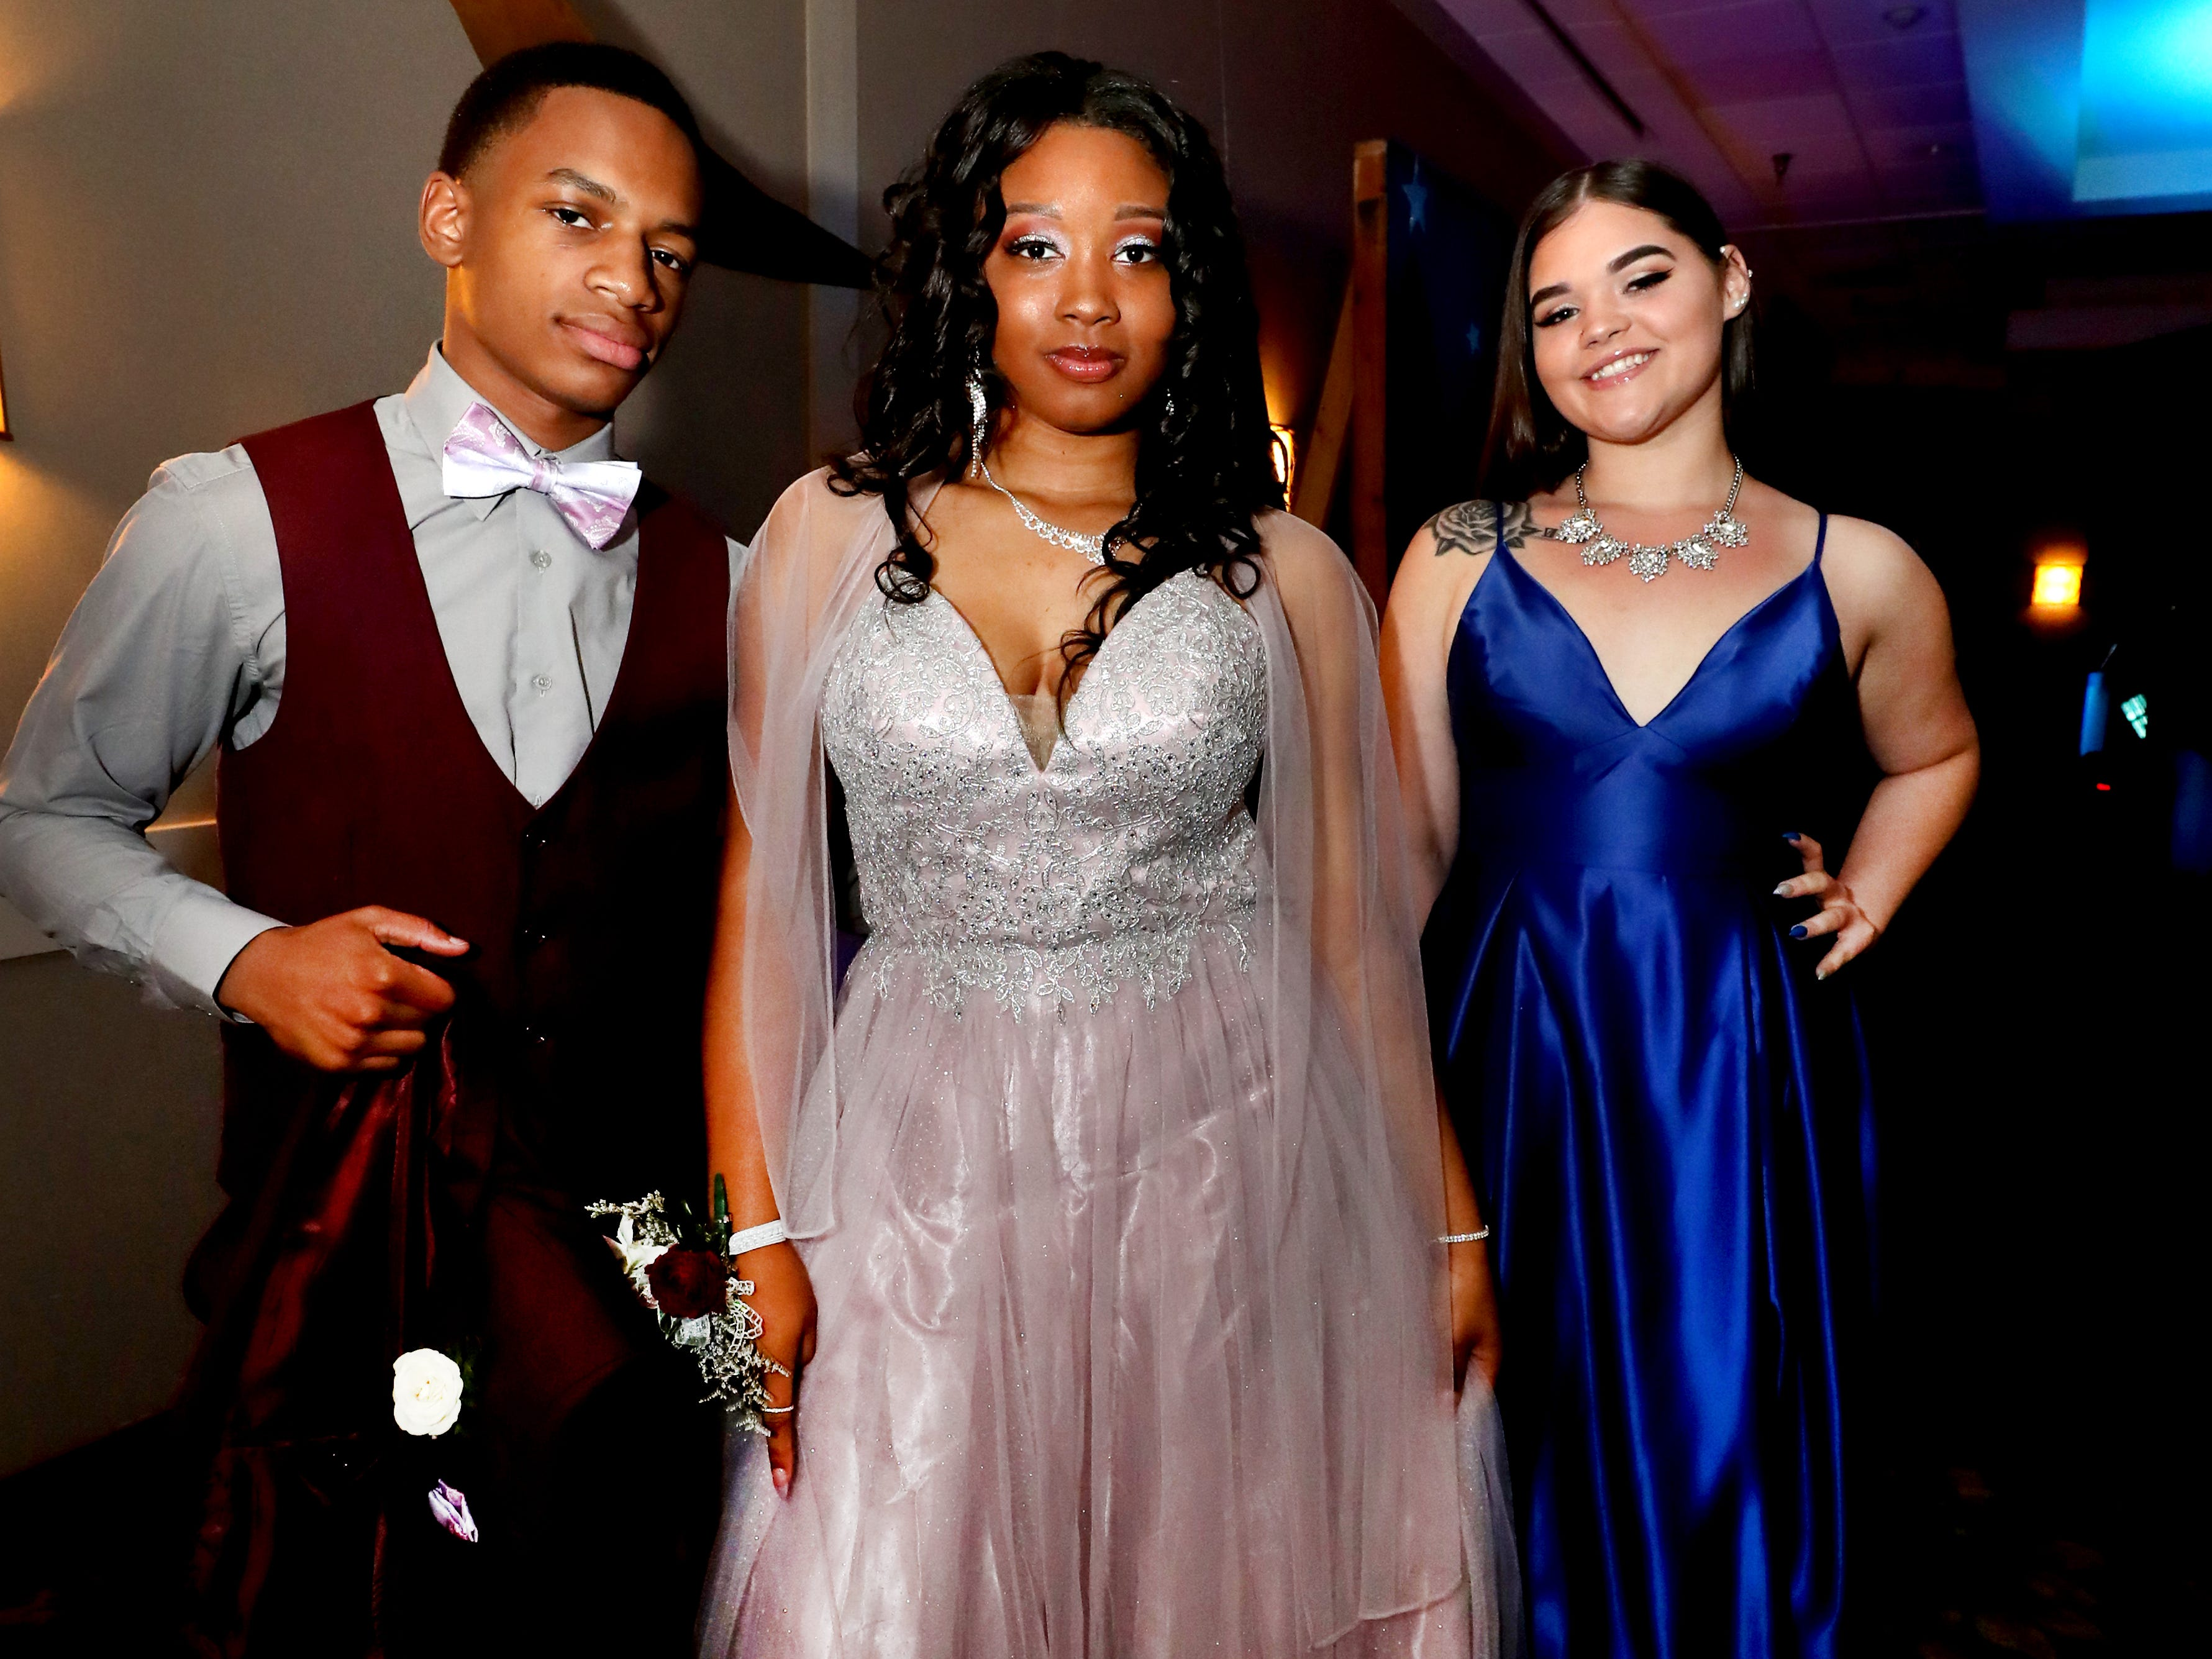 Aalijah Daniel, left, Antoinette Sherrell, center, and Alyssa Pitts, right at Holloway's prom at the DoubleTree on Thursday April 18, 2019.